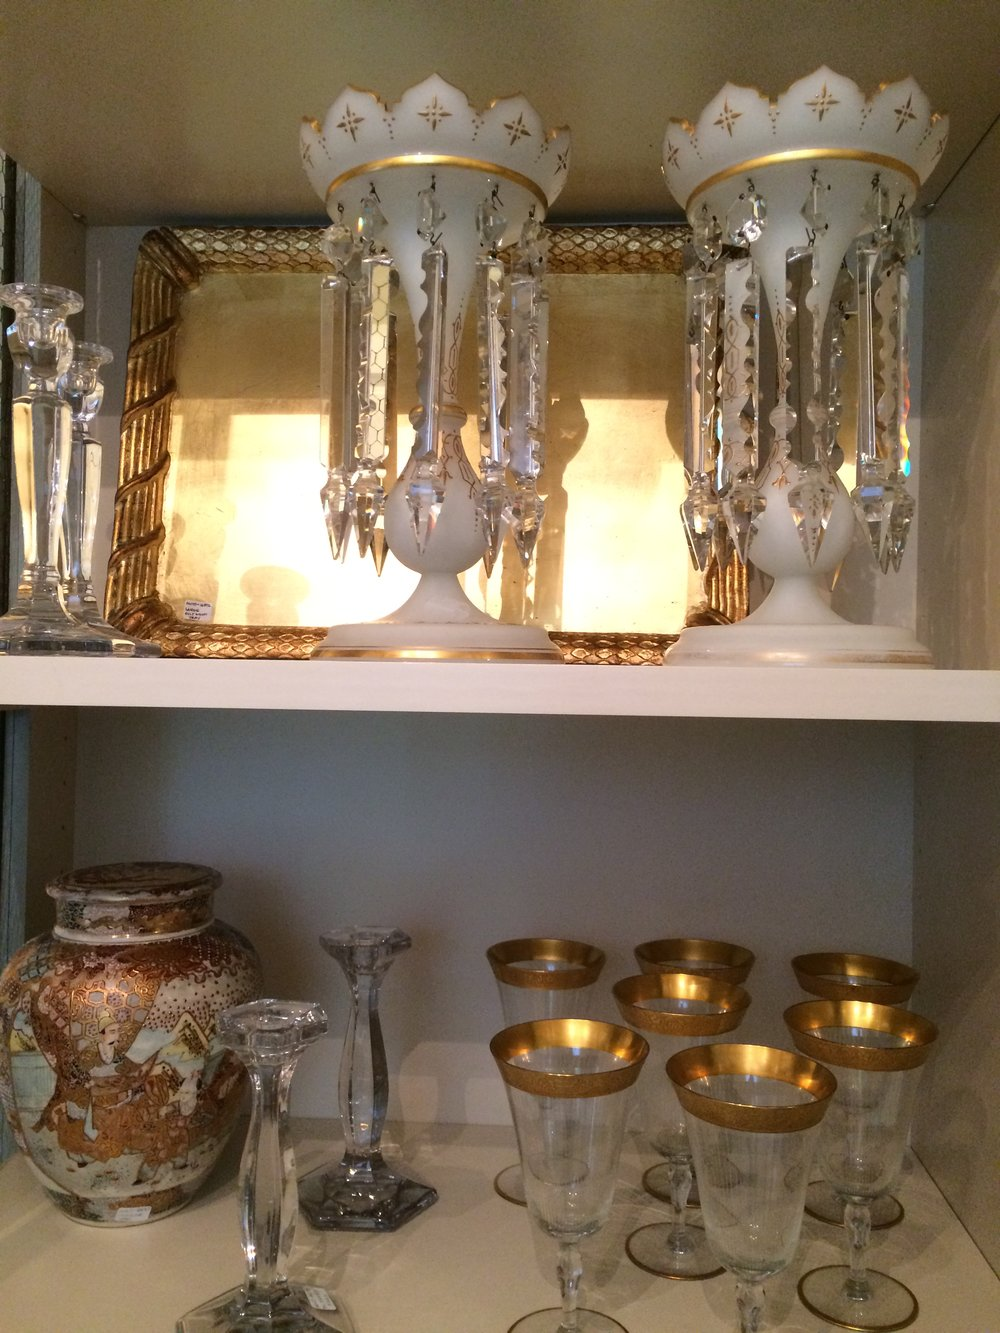 A close up of a cabinet full of lusters and stem ware.